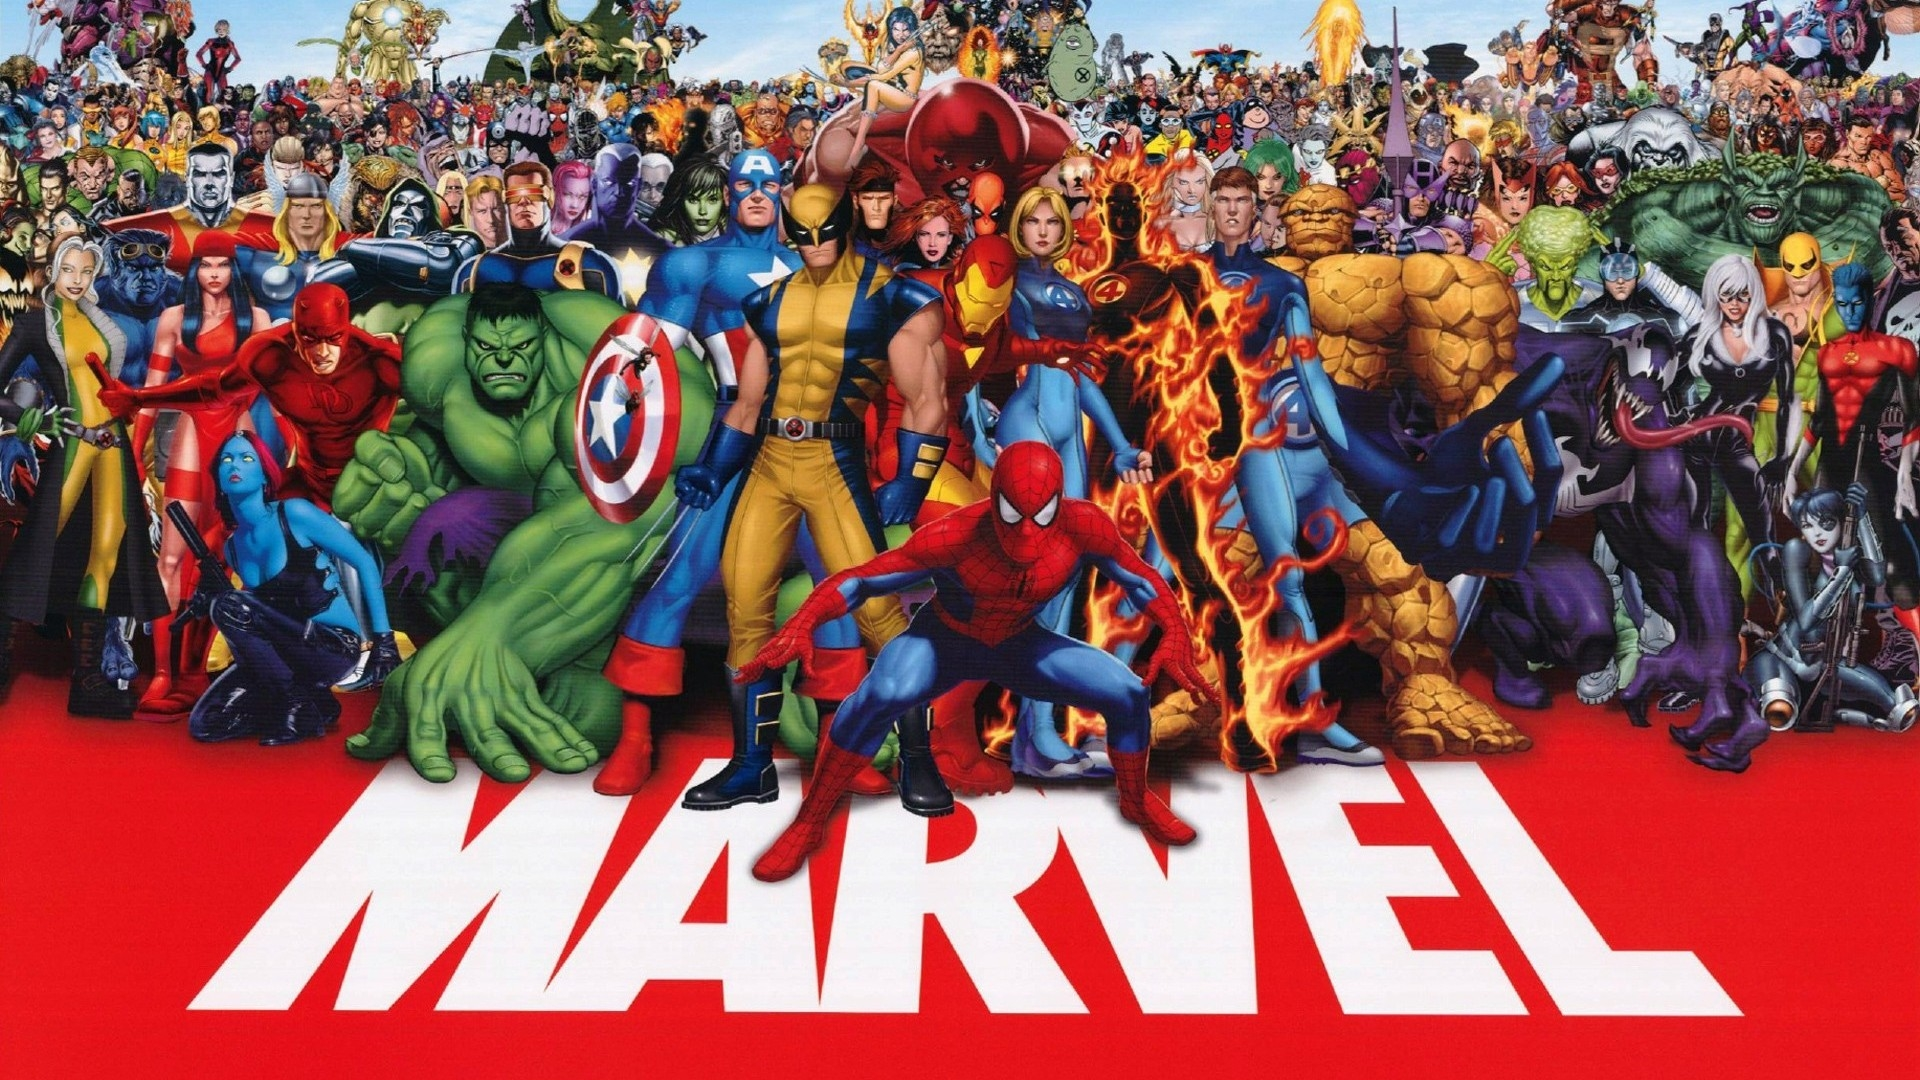 Gambar Anime Marvel Avengers Desktop Wallpaper